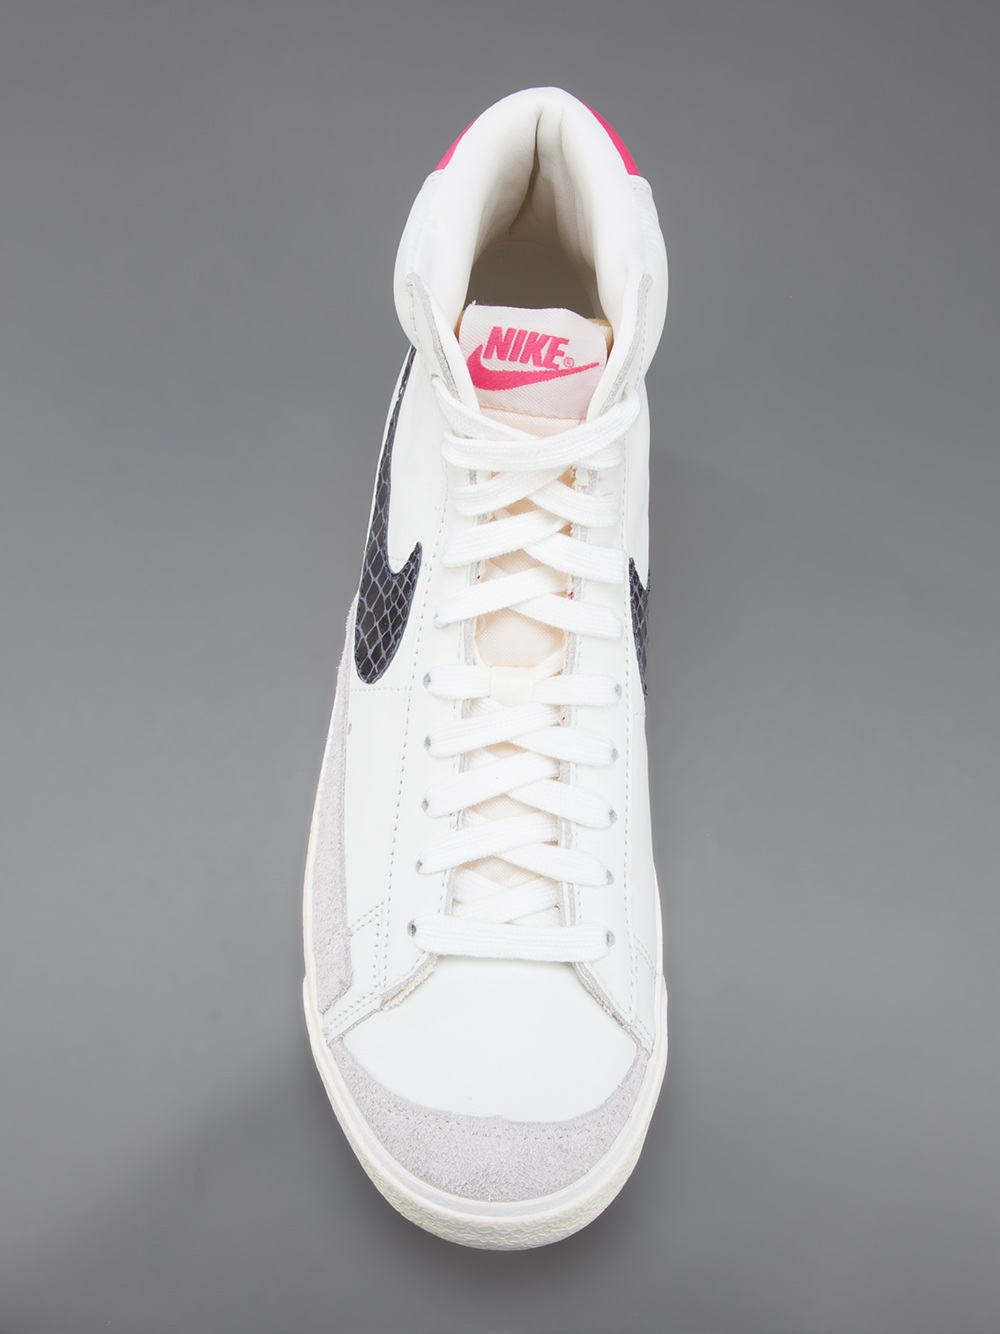 Nike Blazer Mid 77 Hi Top Sneaker in White